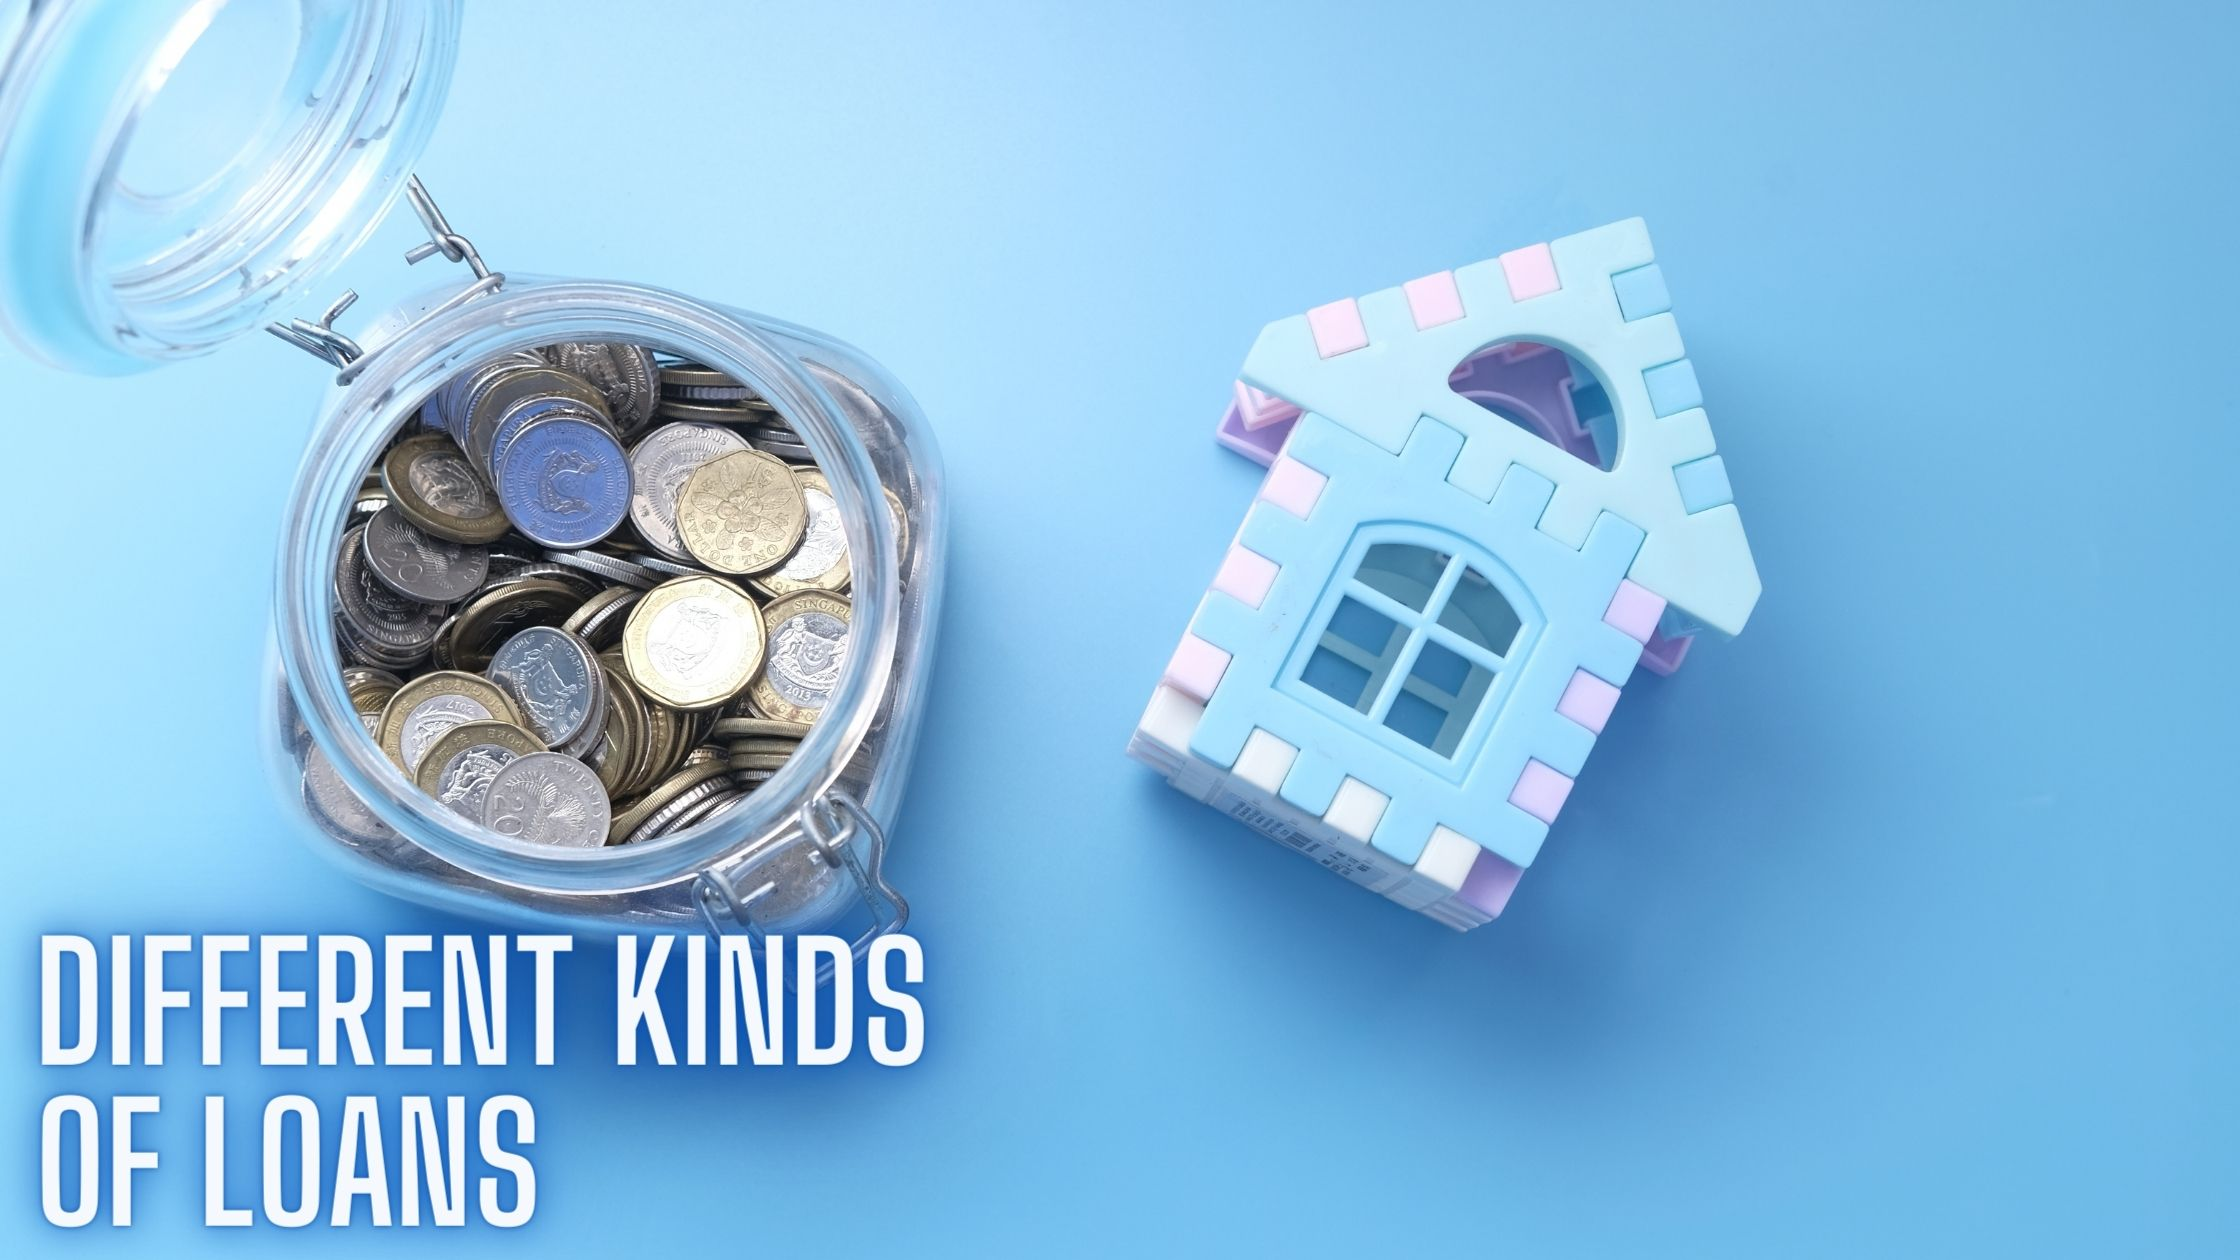 DIFFERENT KINDS OF LOANS